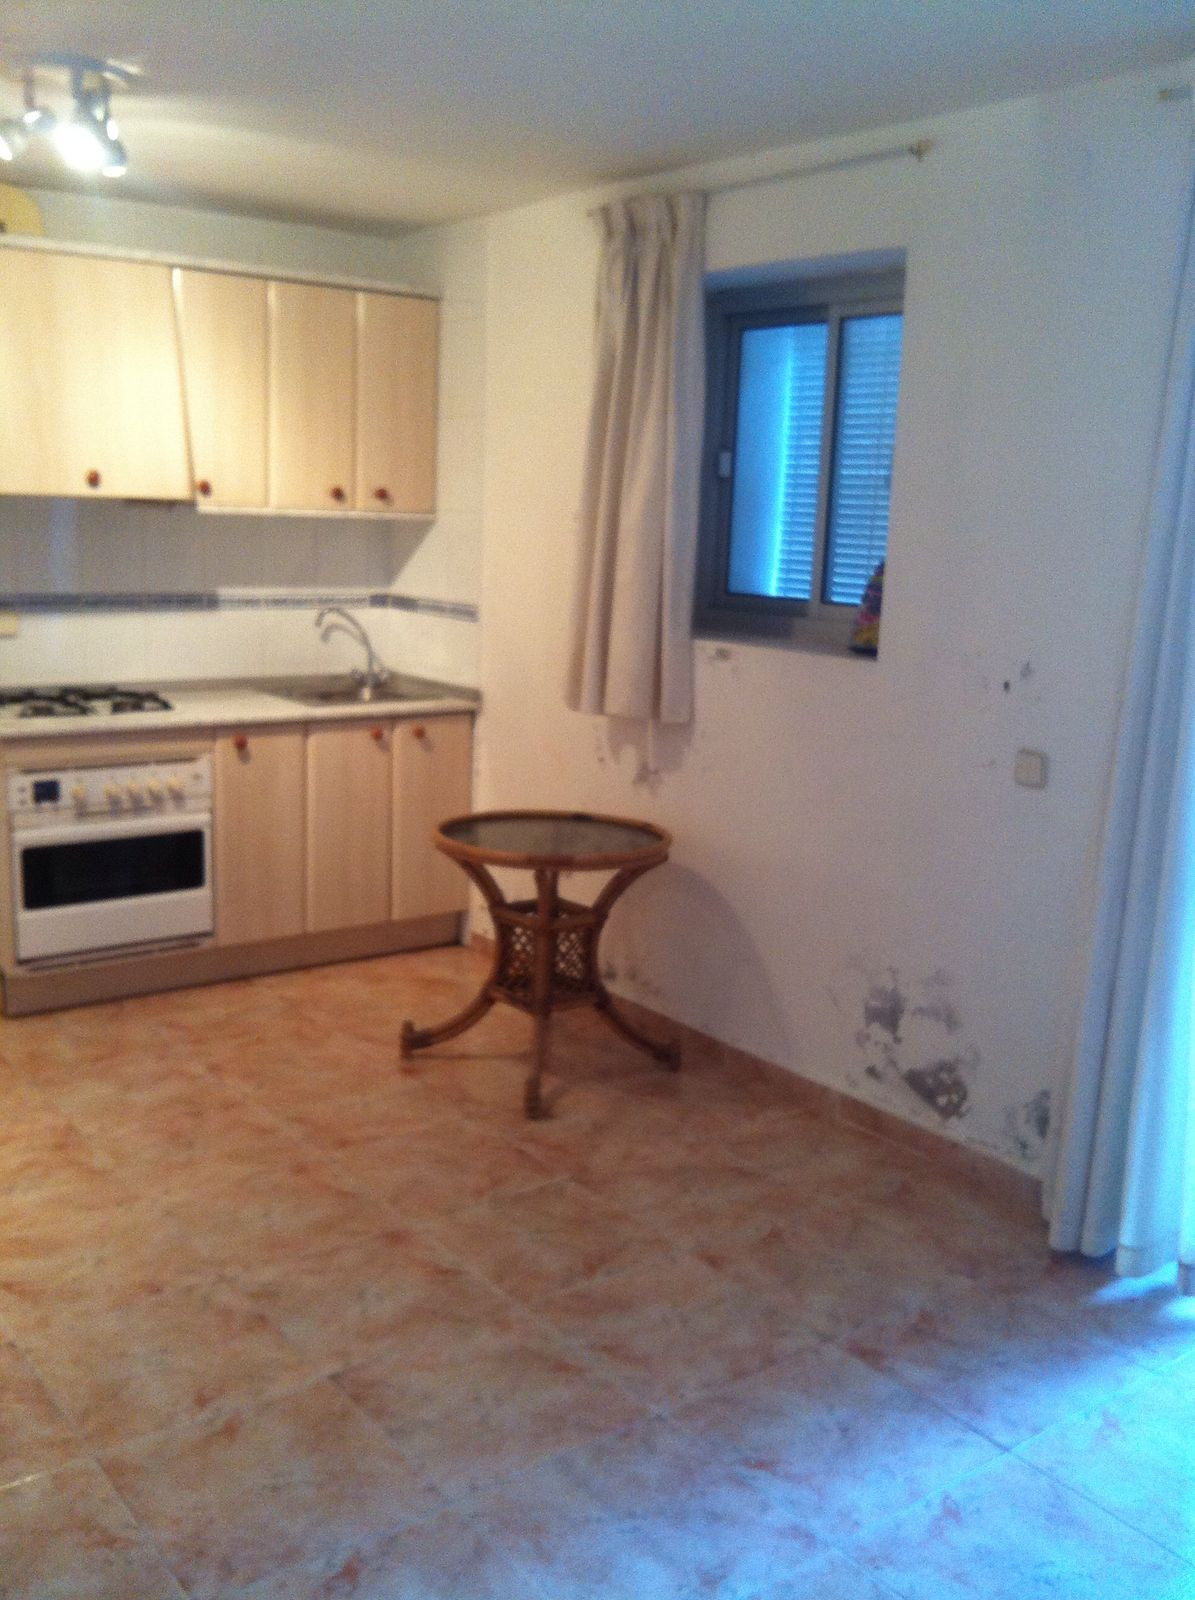 Studio for sale in Manilva, Costa del Sol